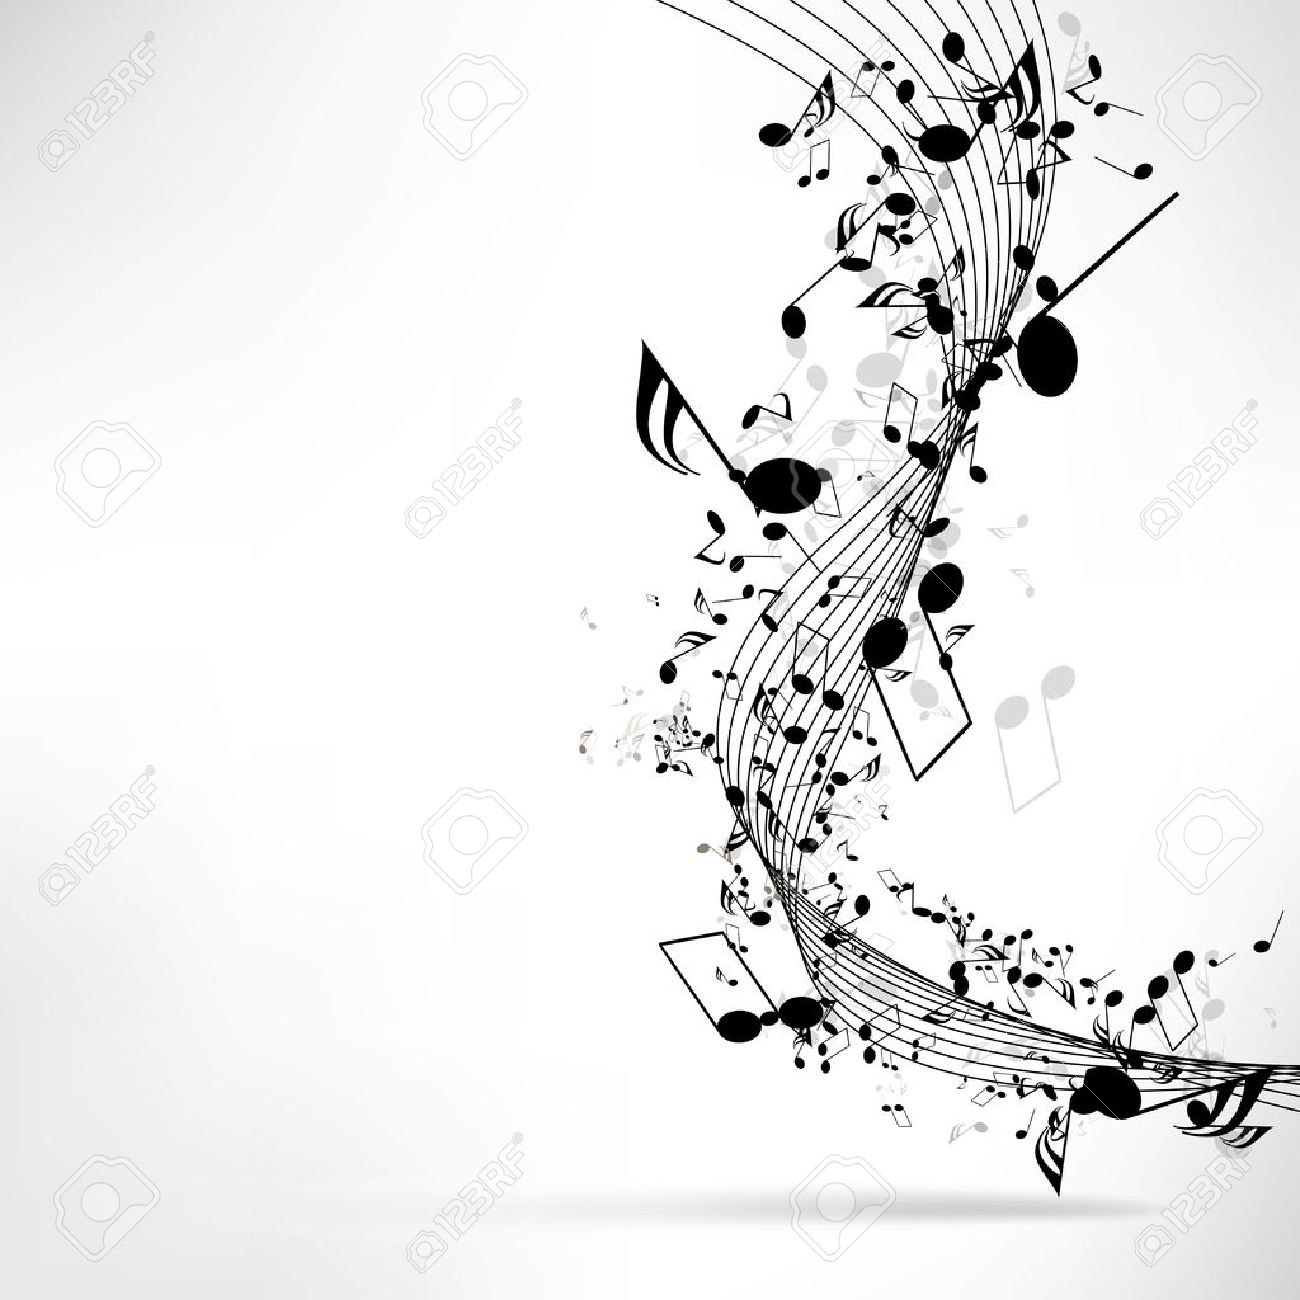 Musical notes staff background on white vector by tassel78 image - Music Symbols Abstract Musical Background With Notes